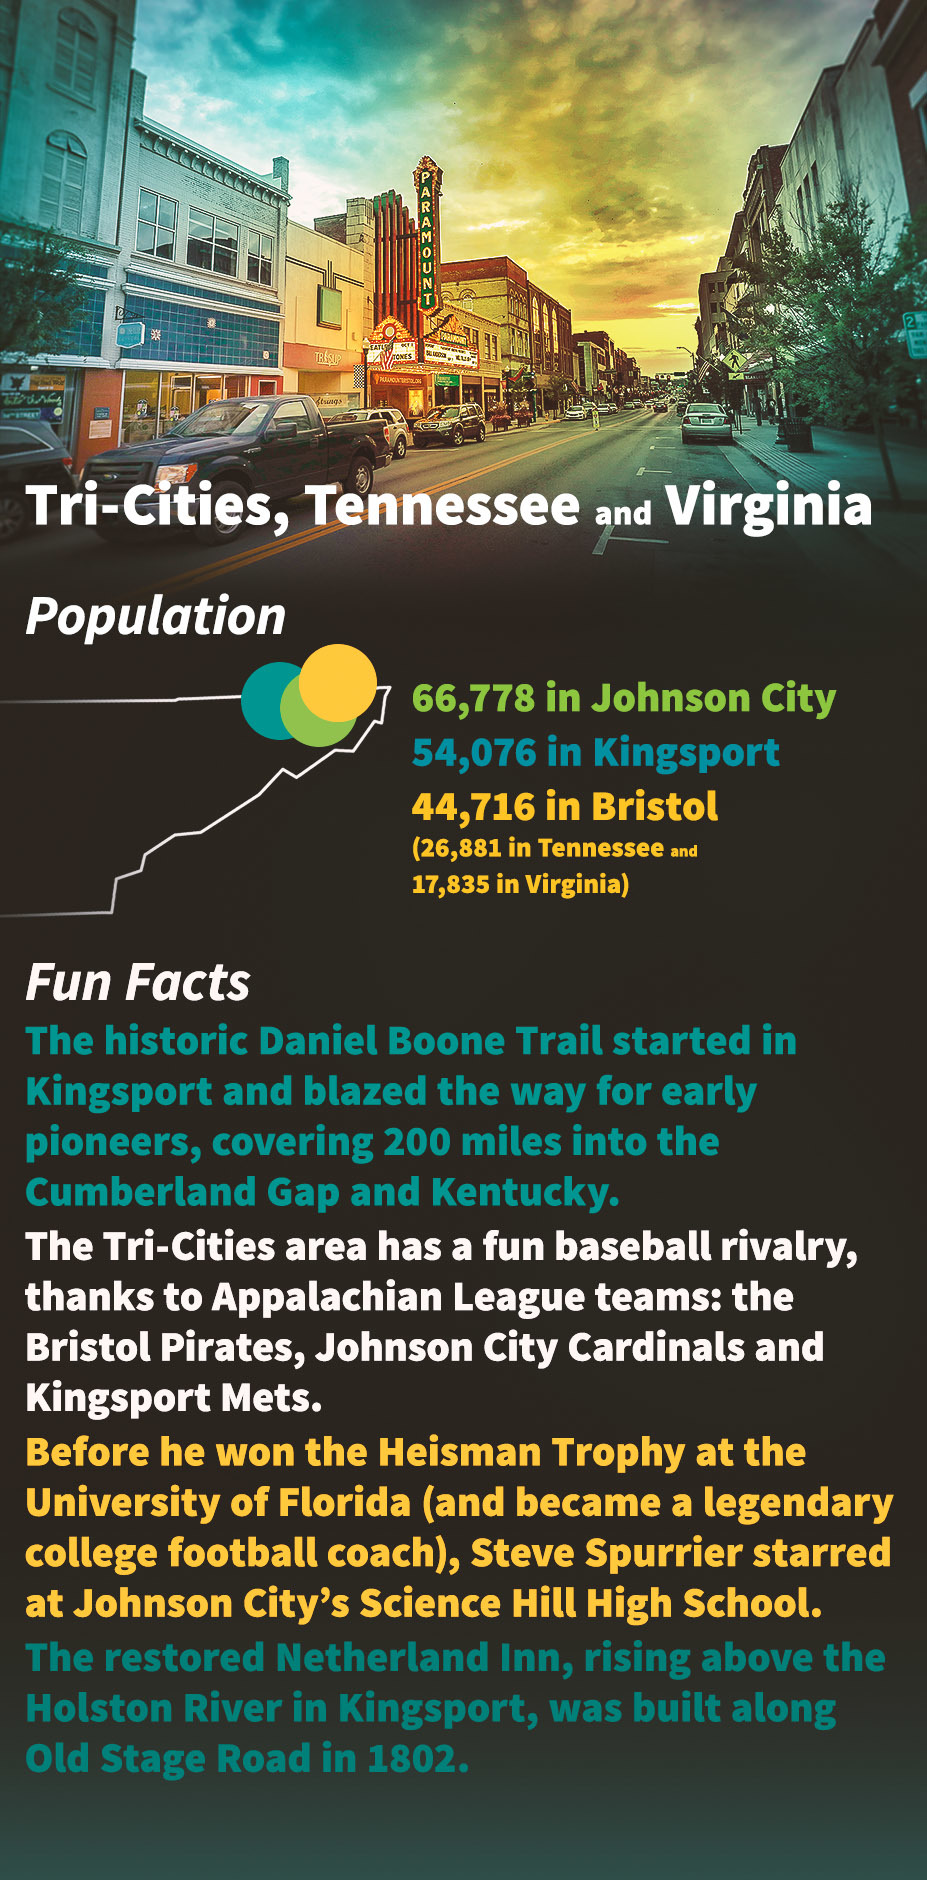 Tri-Cities Fun Facts